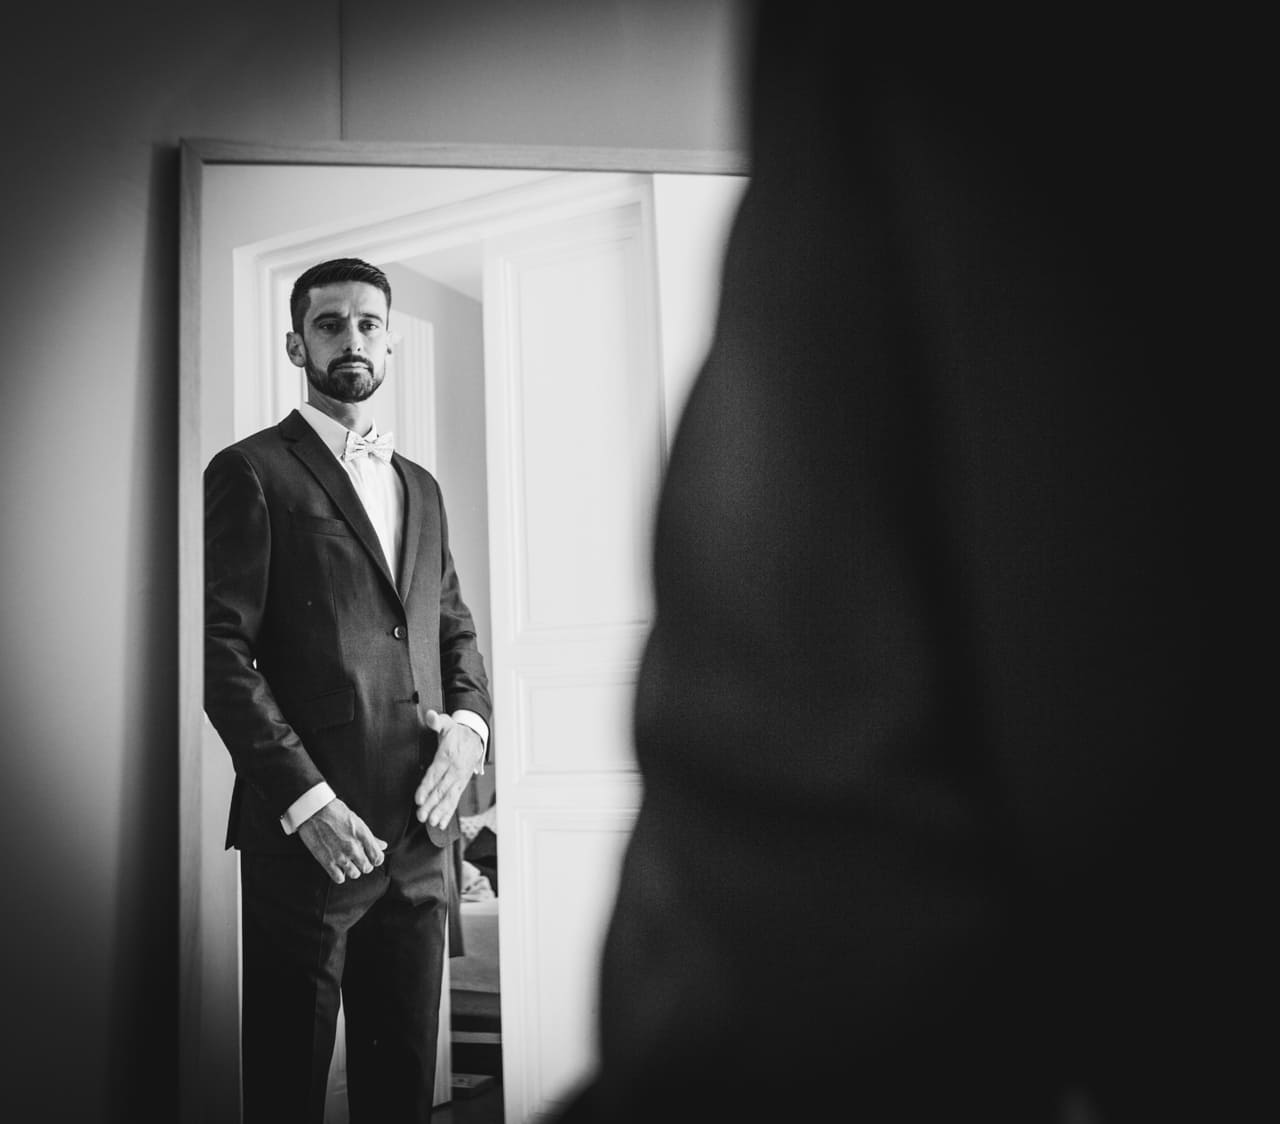 photo-preparatif-naturel-reportage-photo-mariage-haut-gamme-luxe-chic-boheme-champetre-minimaliste-photographe-aline-ruze-chateau-flaugergues-montpellier-1